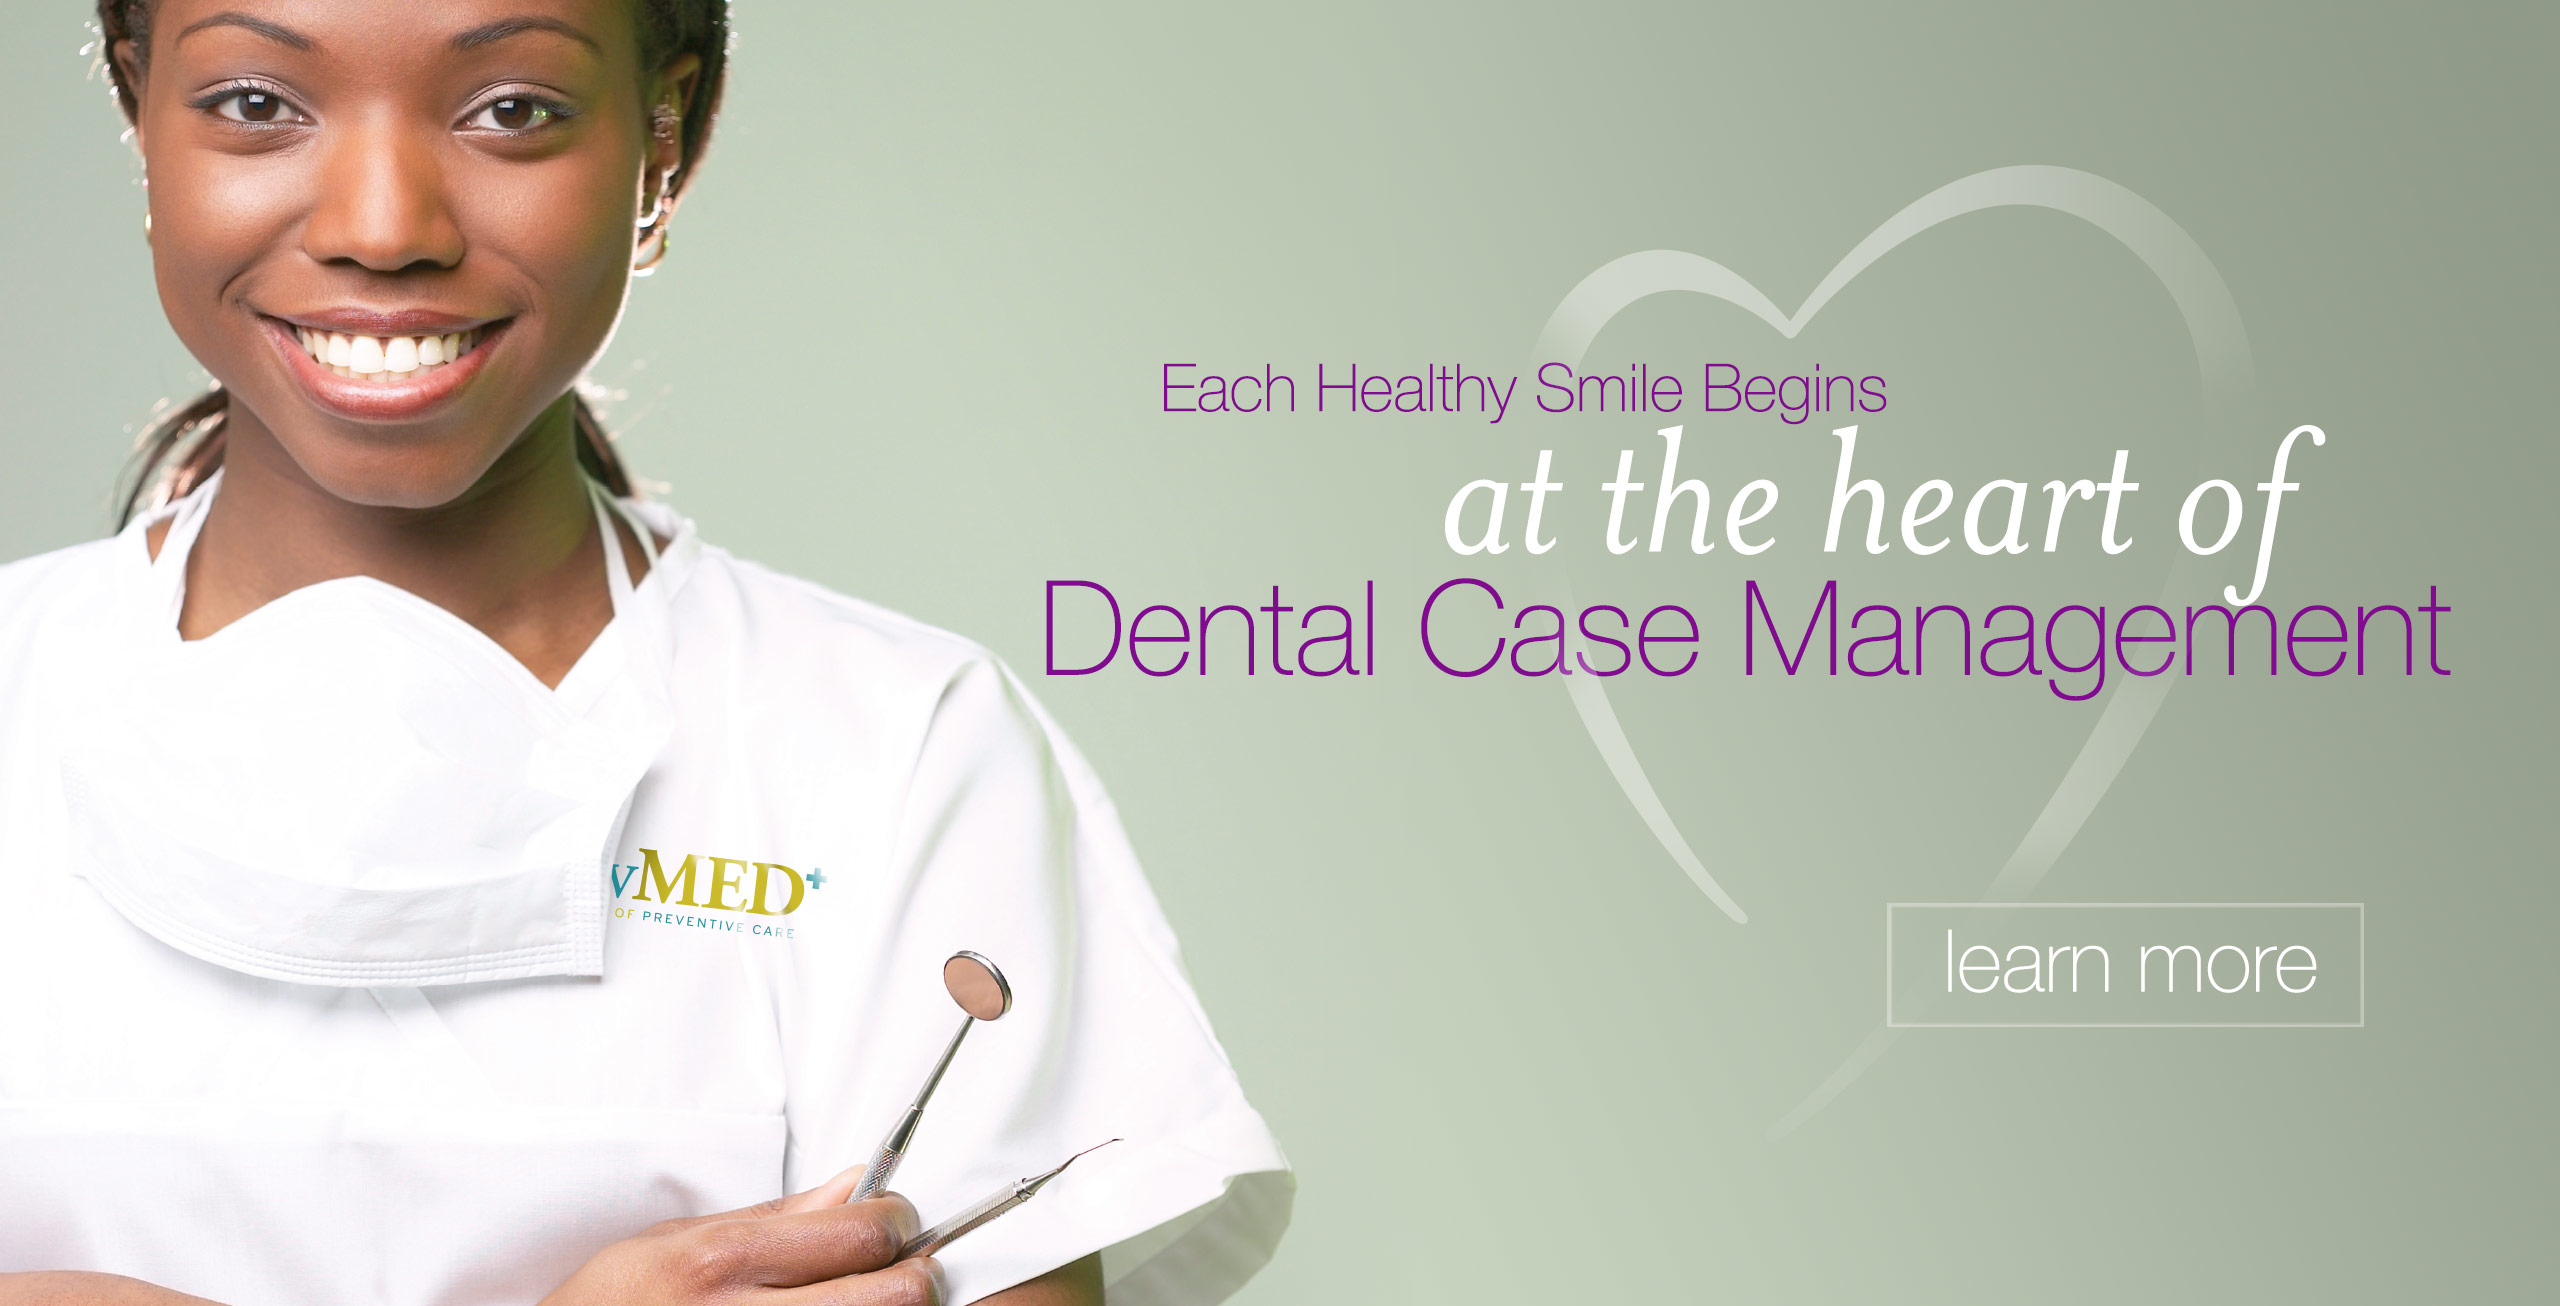 On-site Dental Case Management Services for Long-Term Care Faciliities